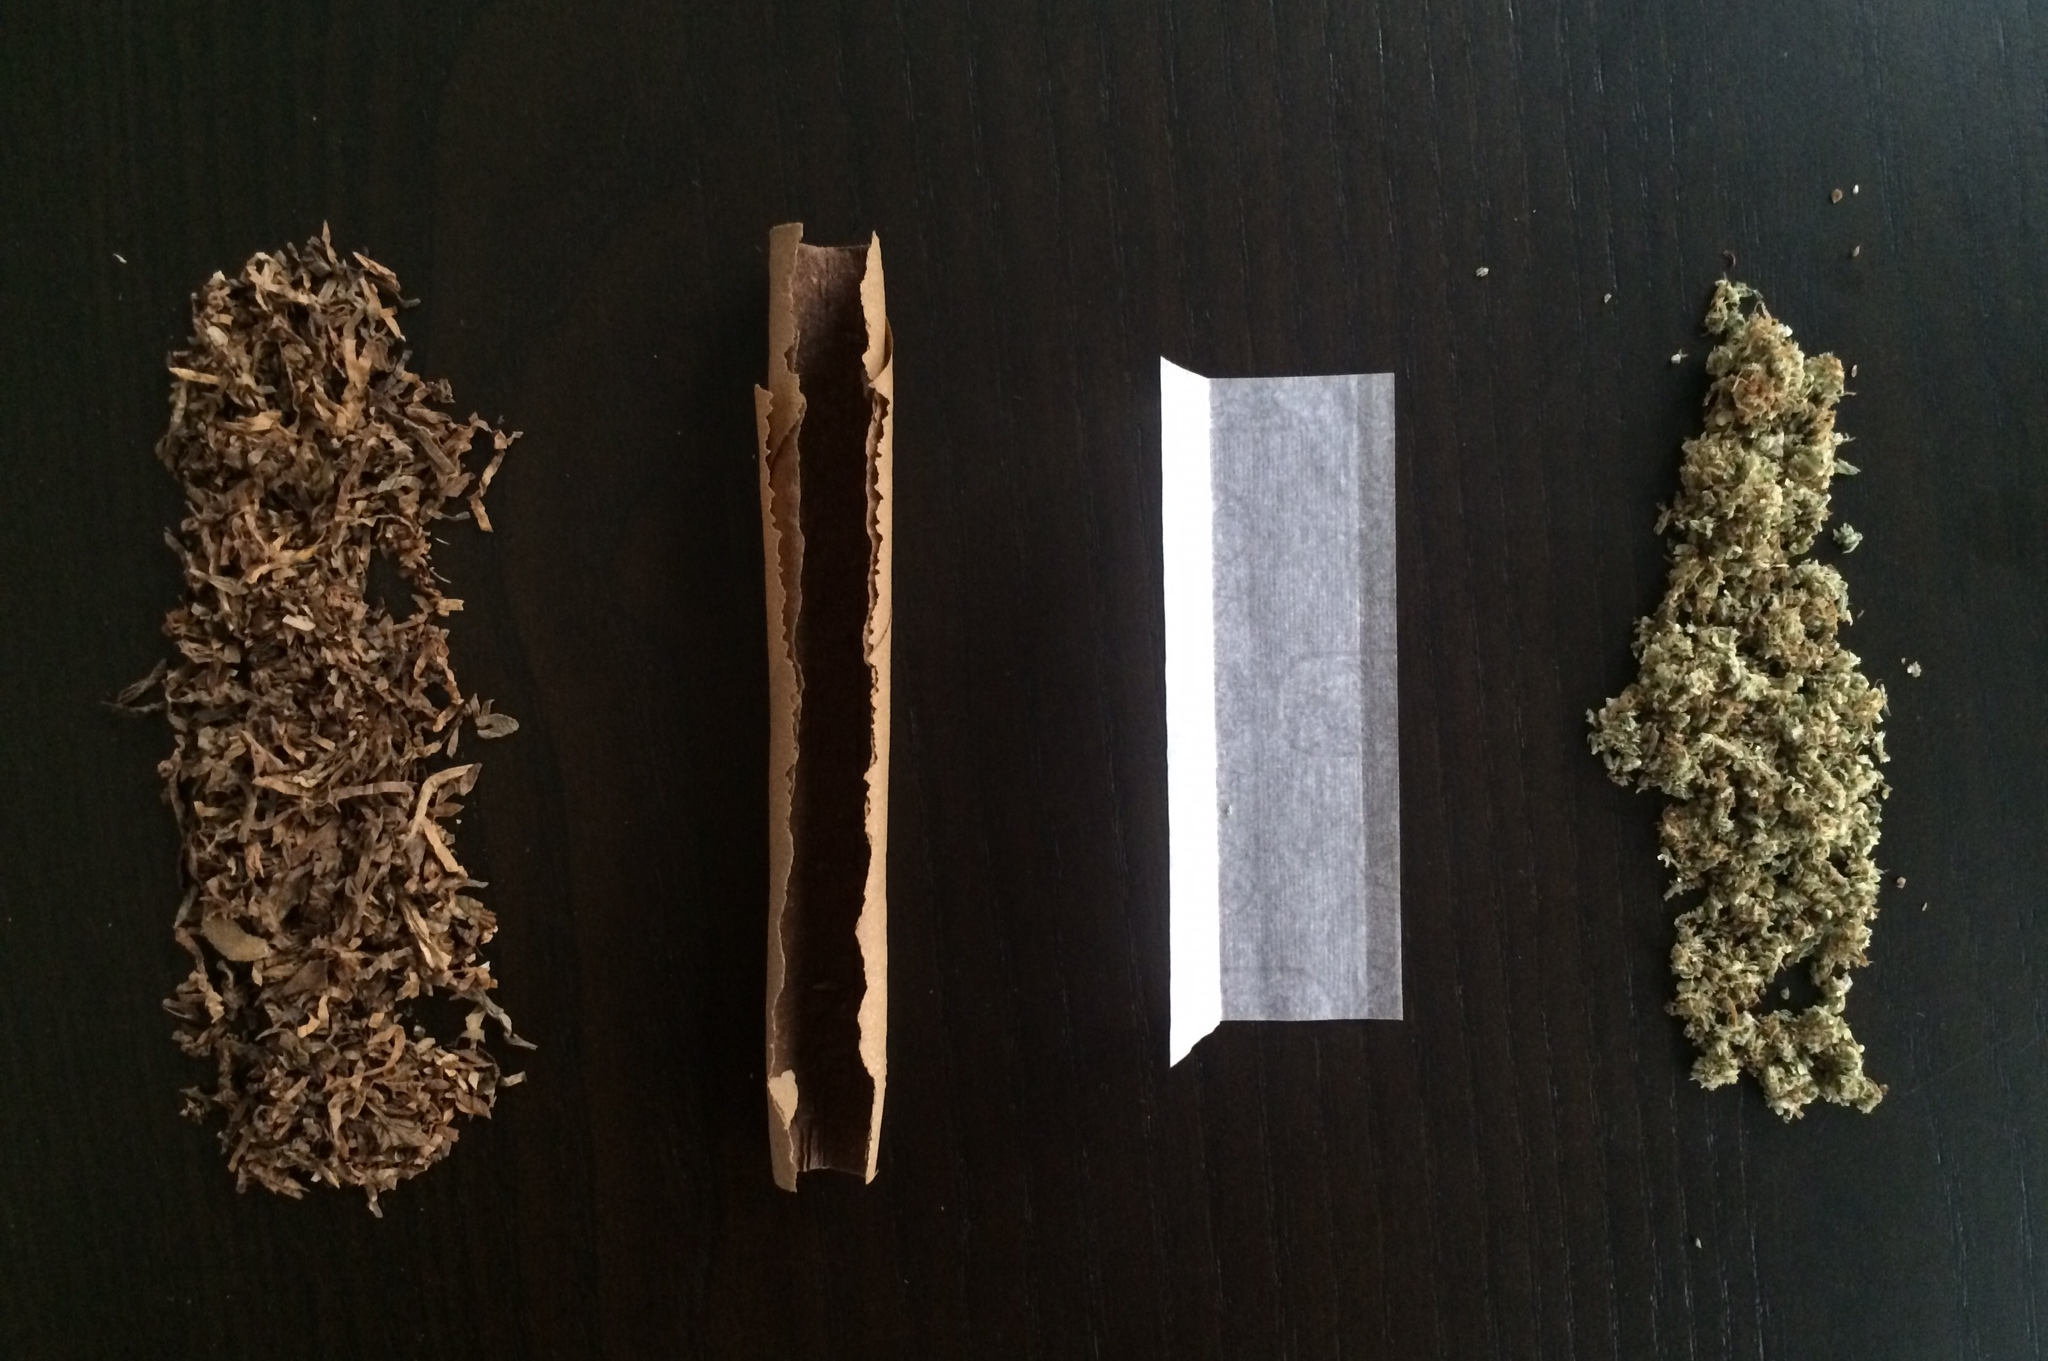 What are the differences between joints vs. blunts vs. spliffs